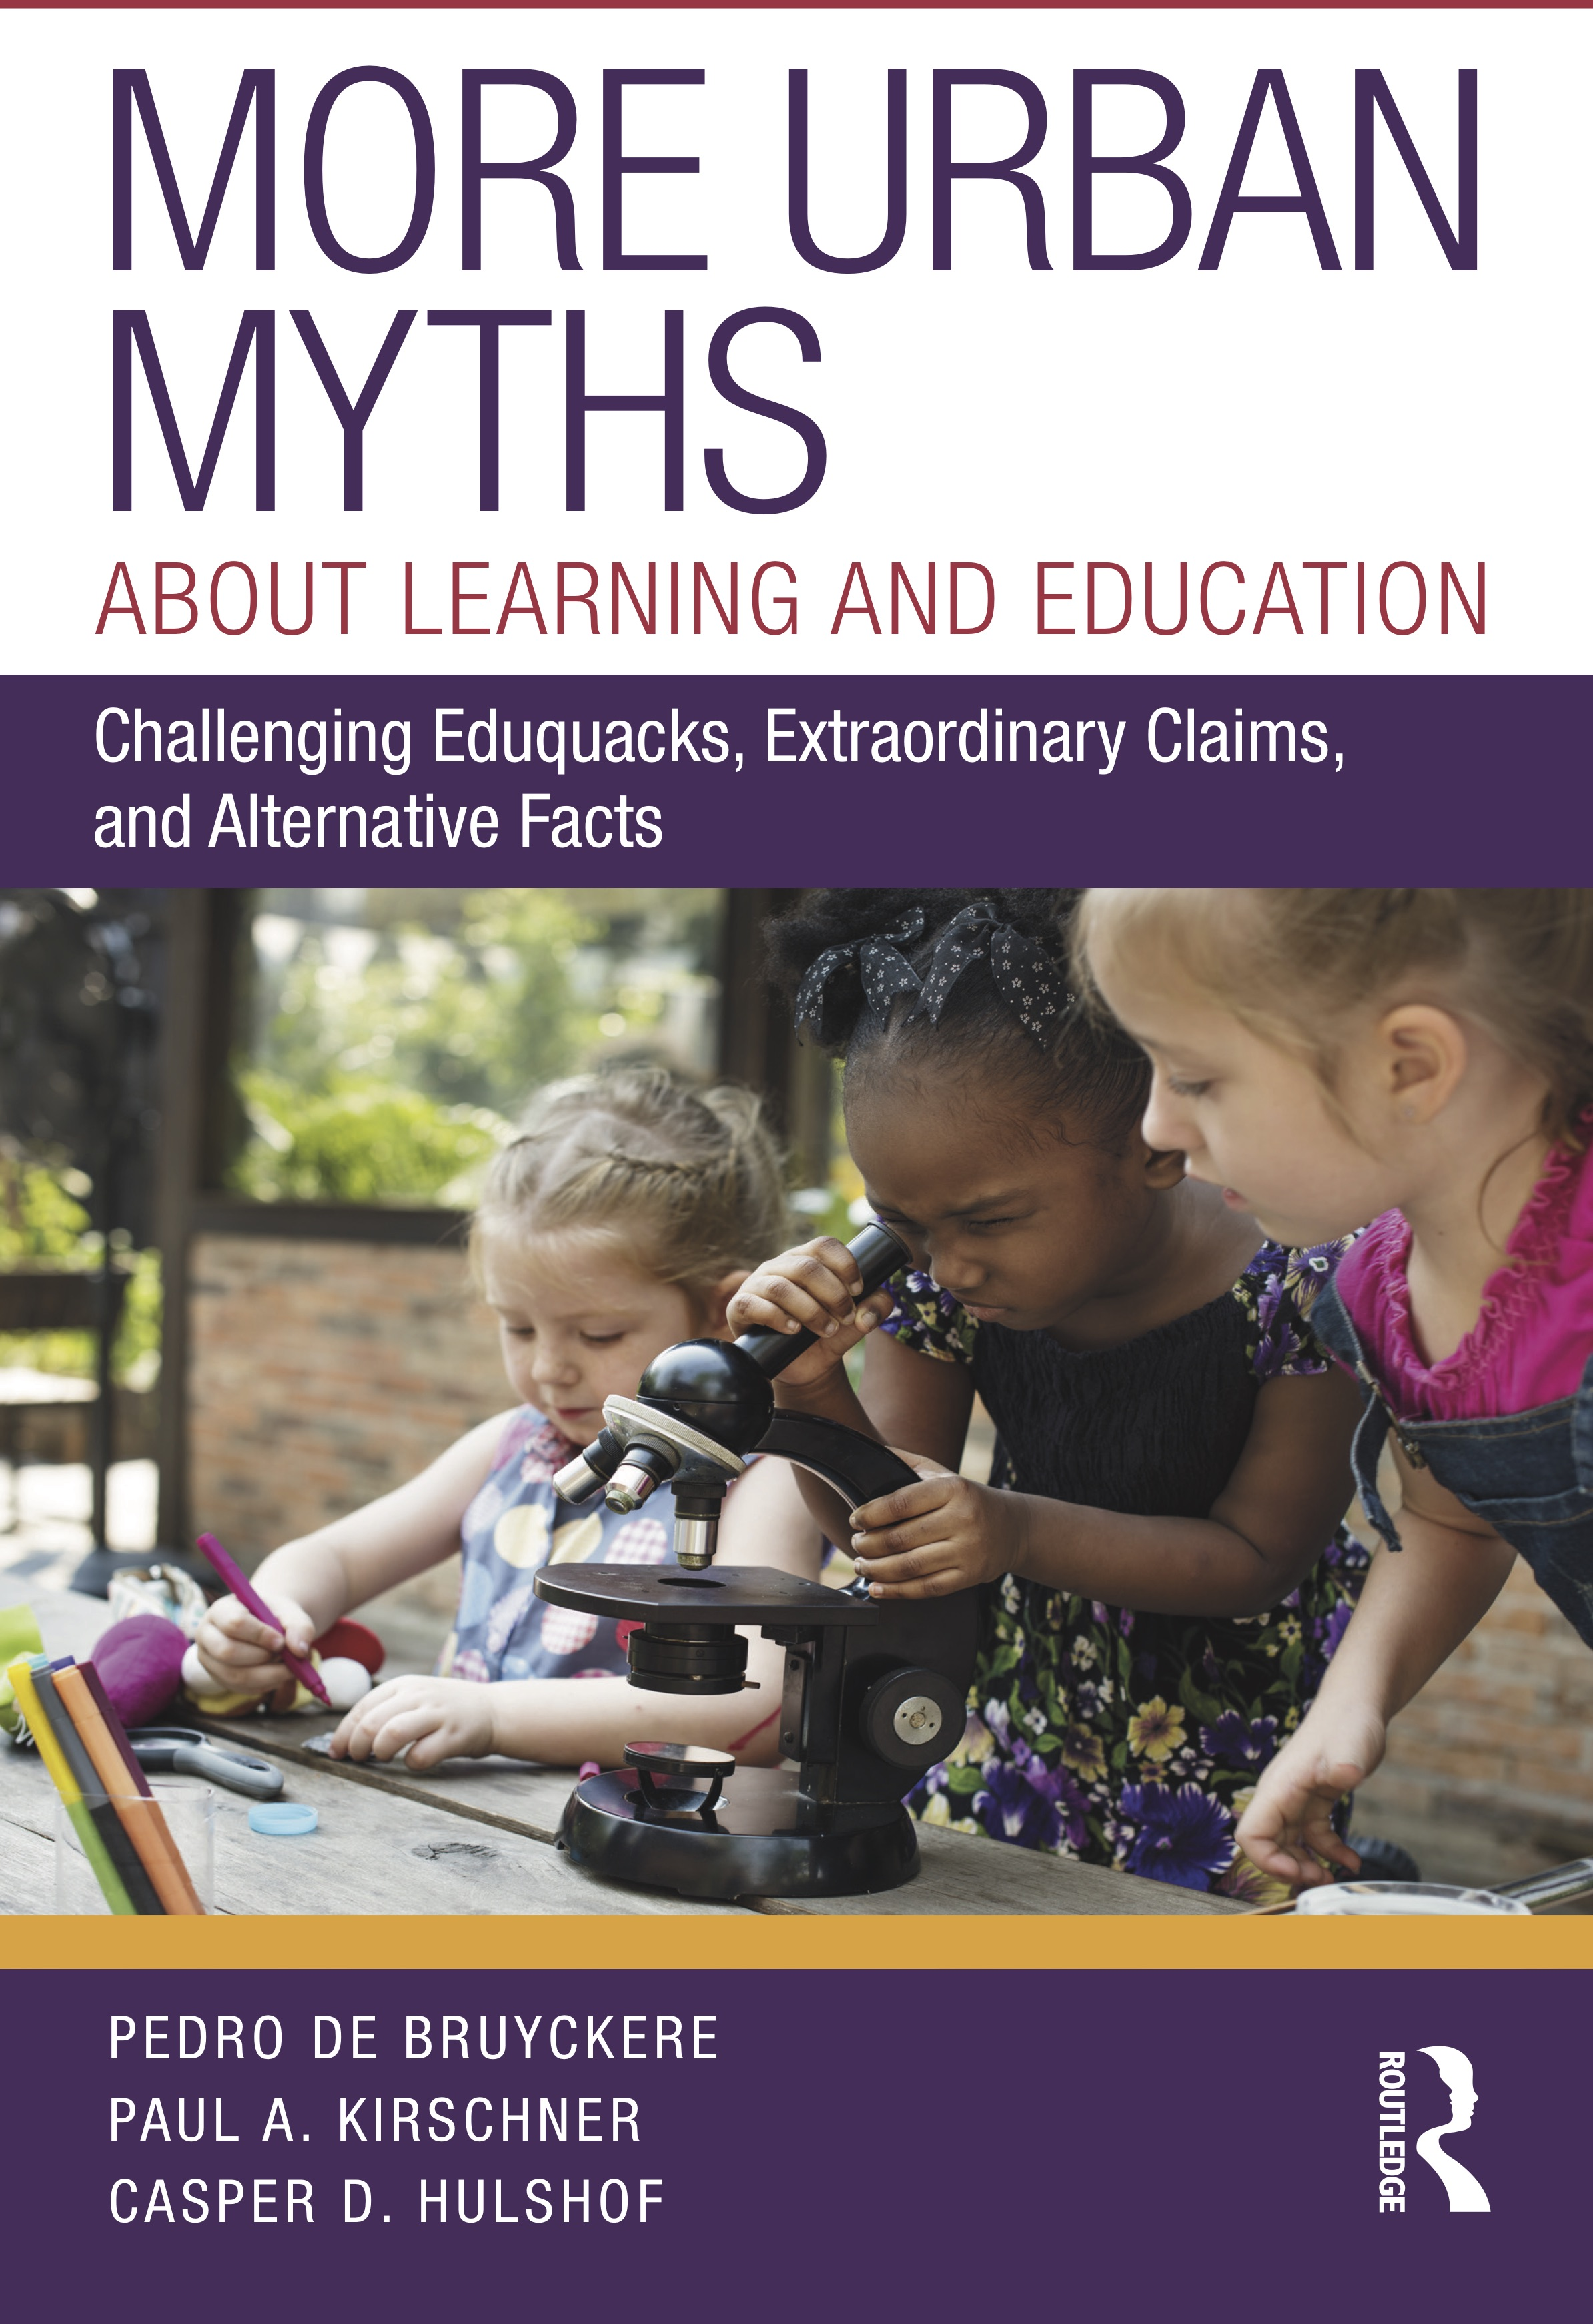 Myths in education!